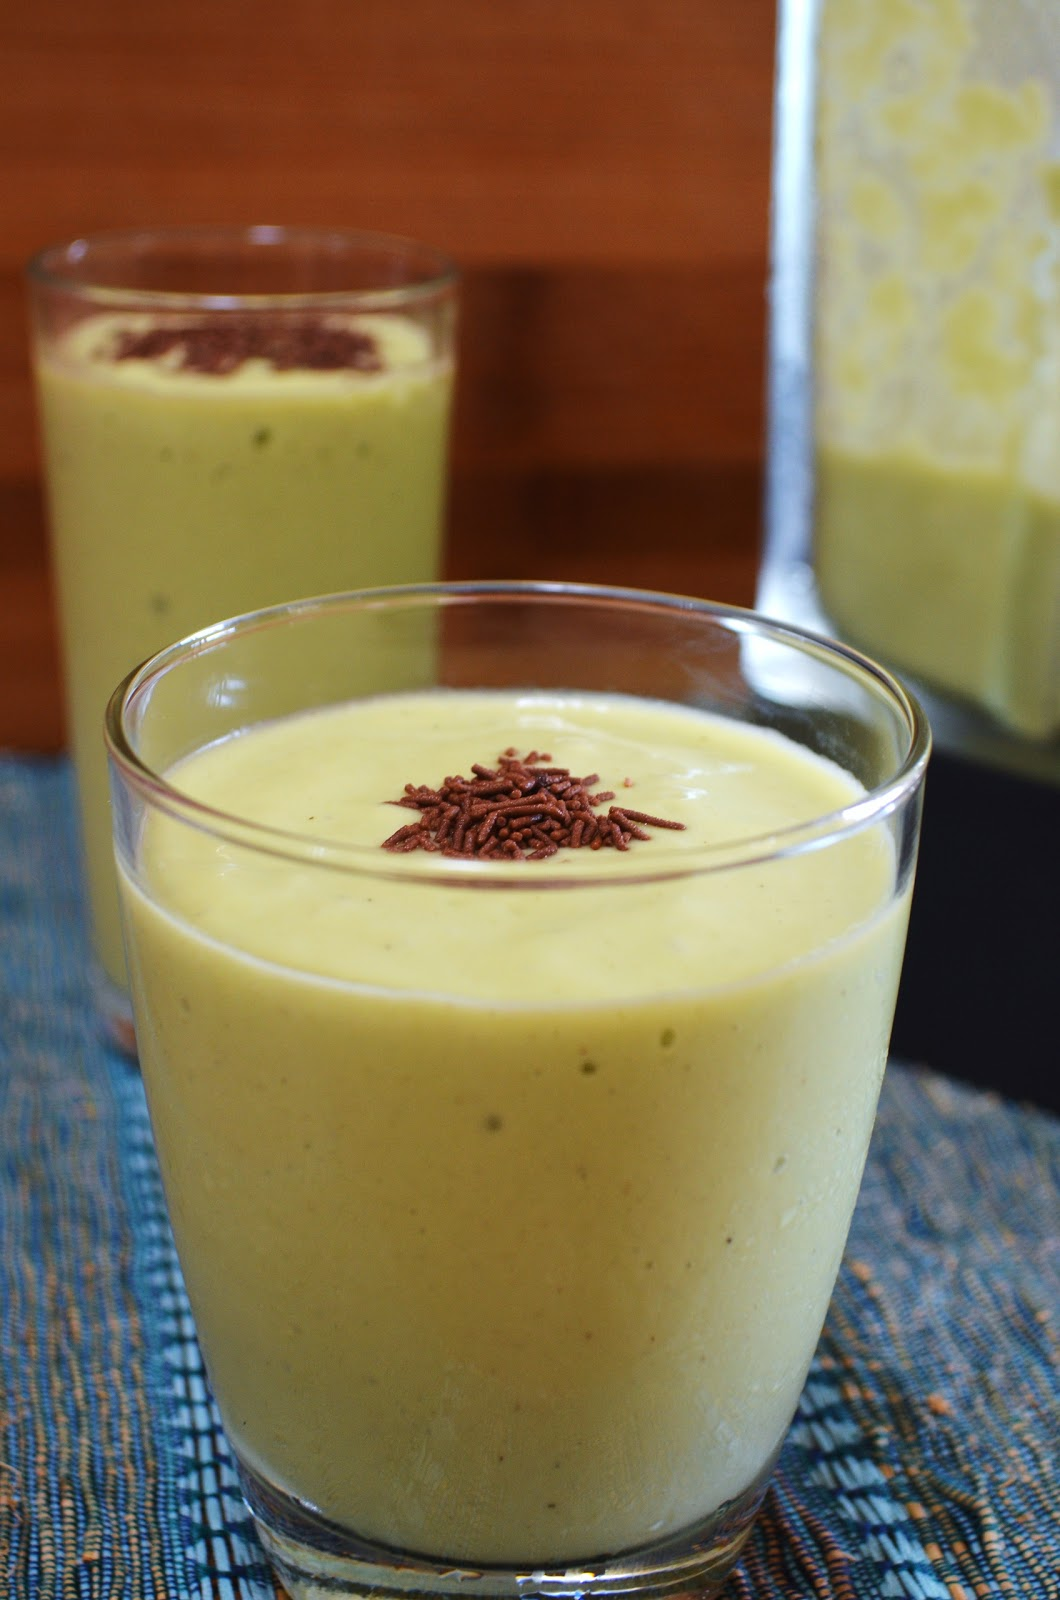 Gormandize Jus Alpukat Indonesian Avocado Milkshake